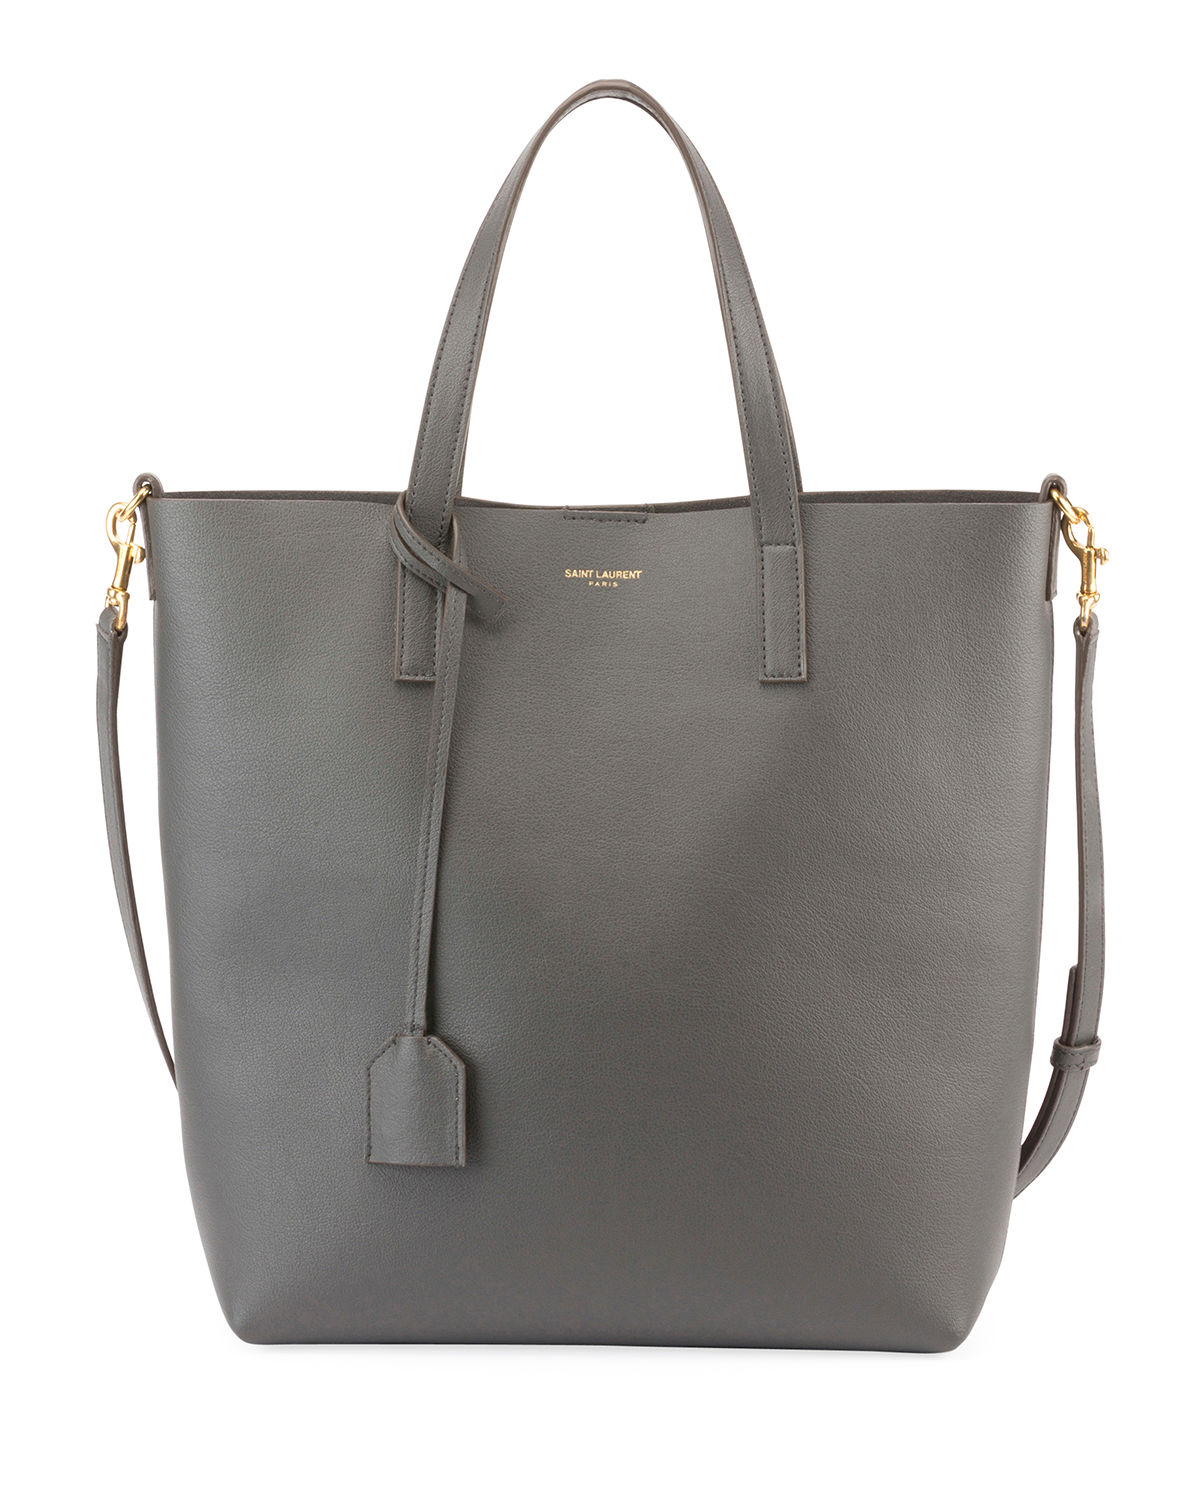 Toy Leather Tote Bag with Shoulder Strap